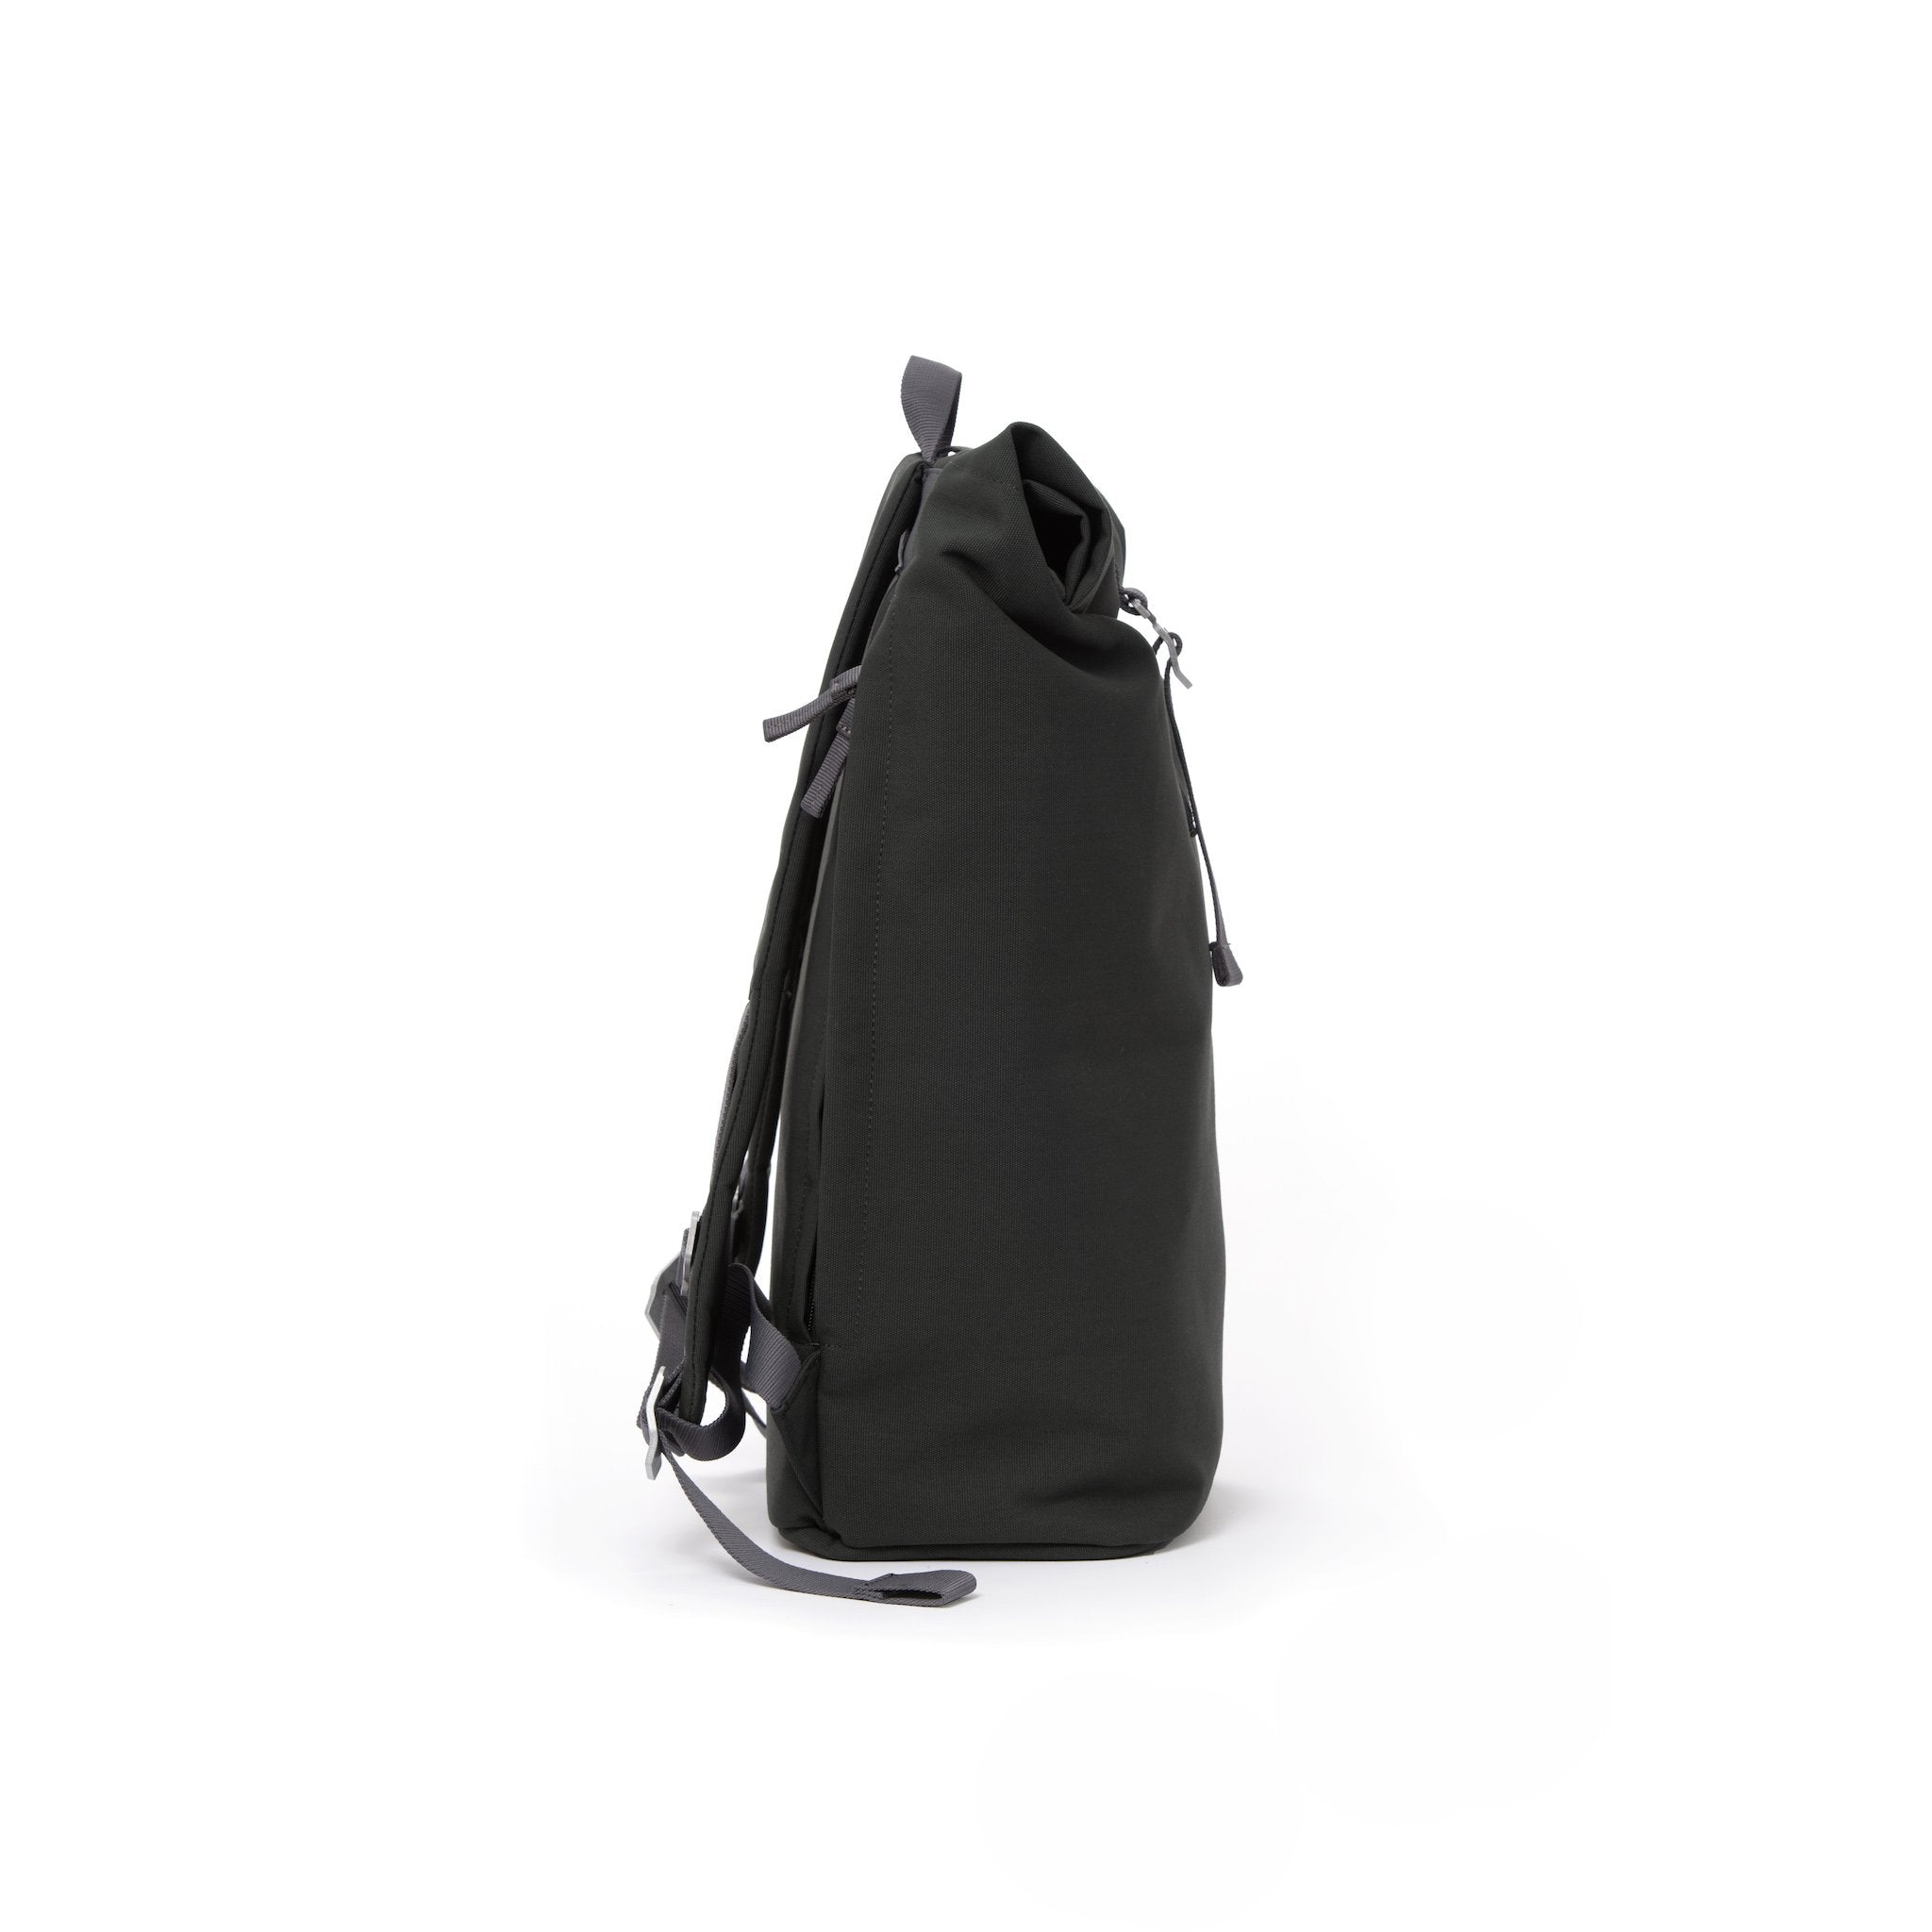 Grey waterproof canvas men's rolltop backpack.